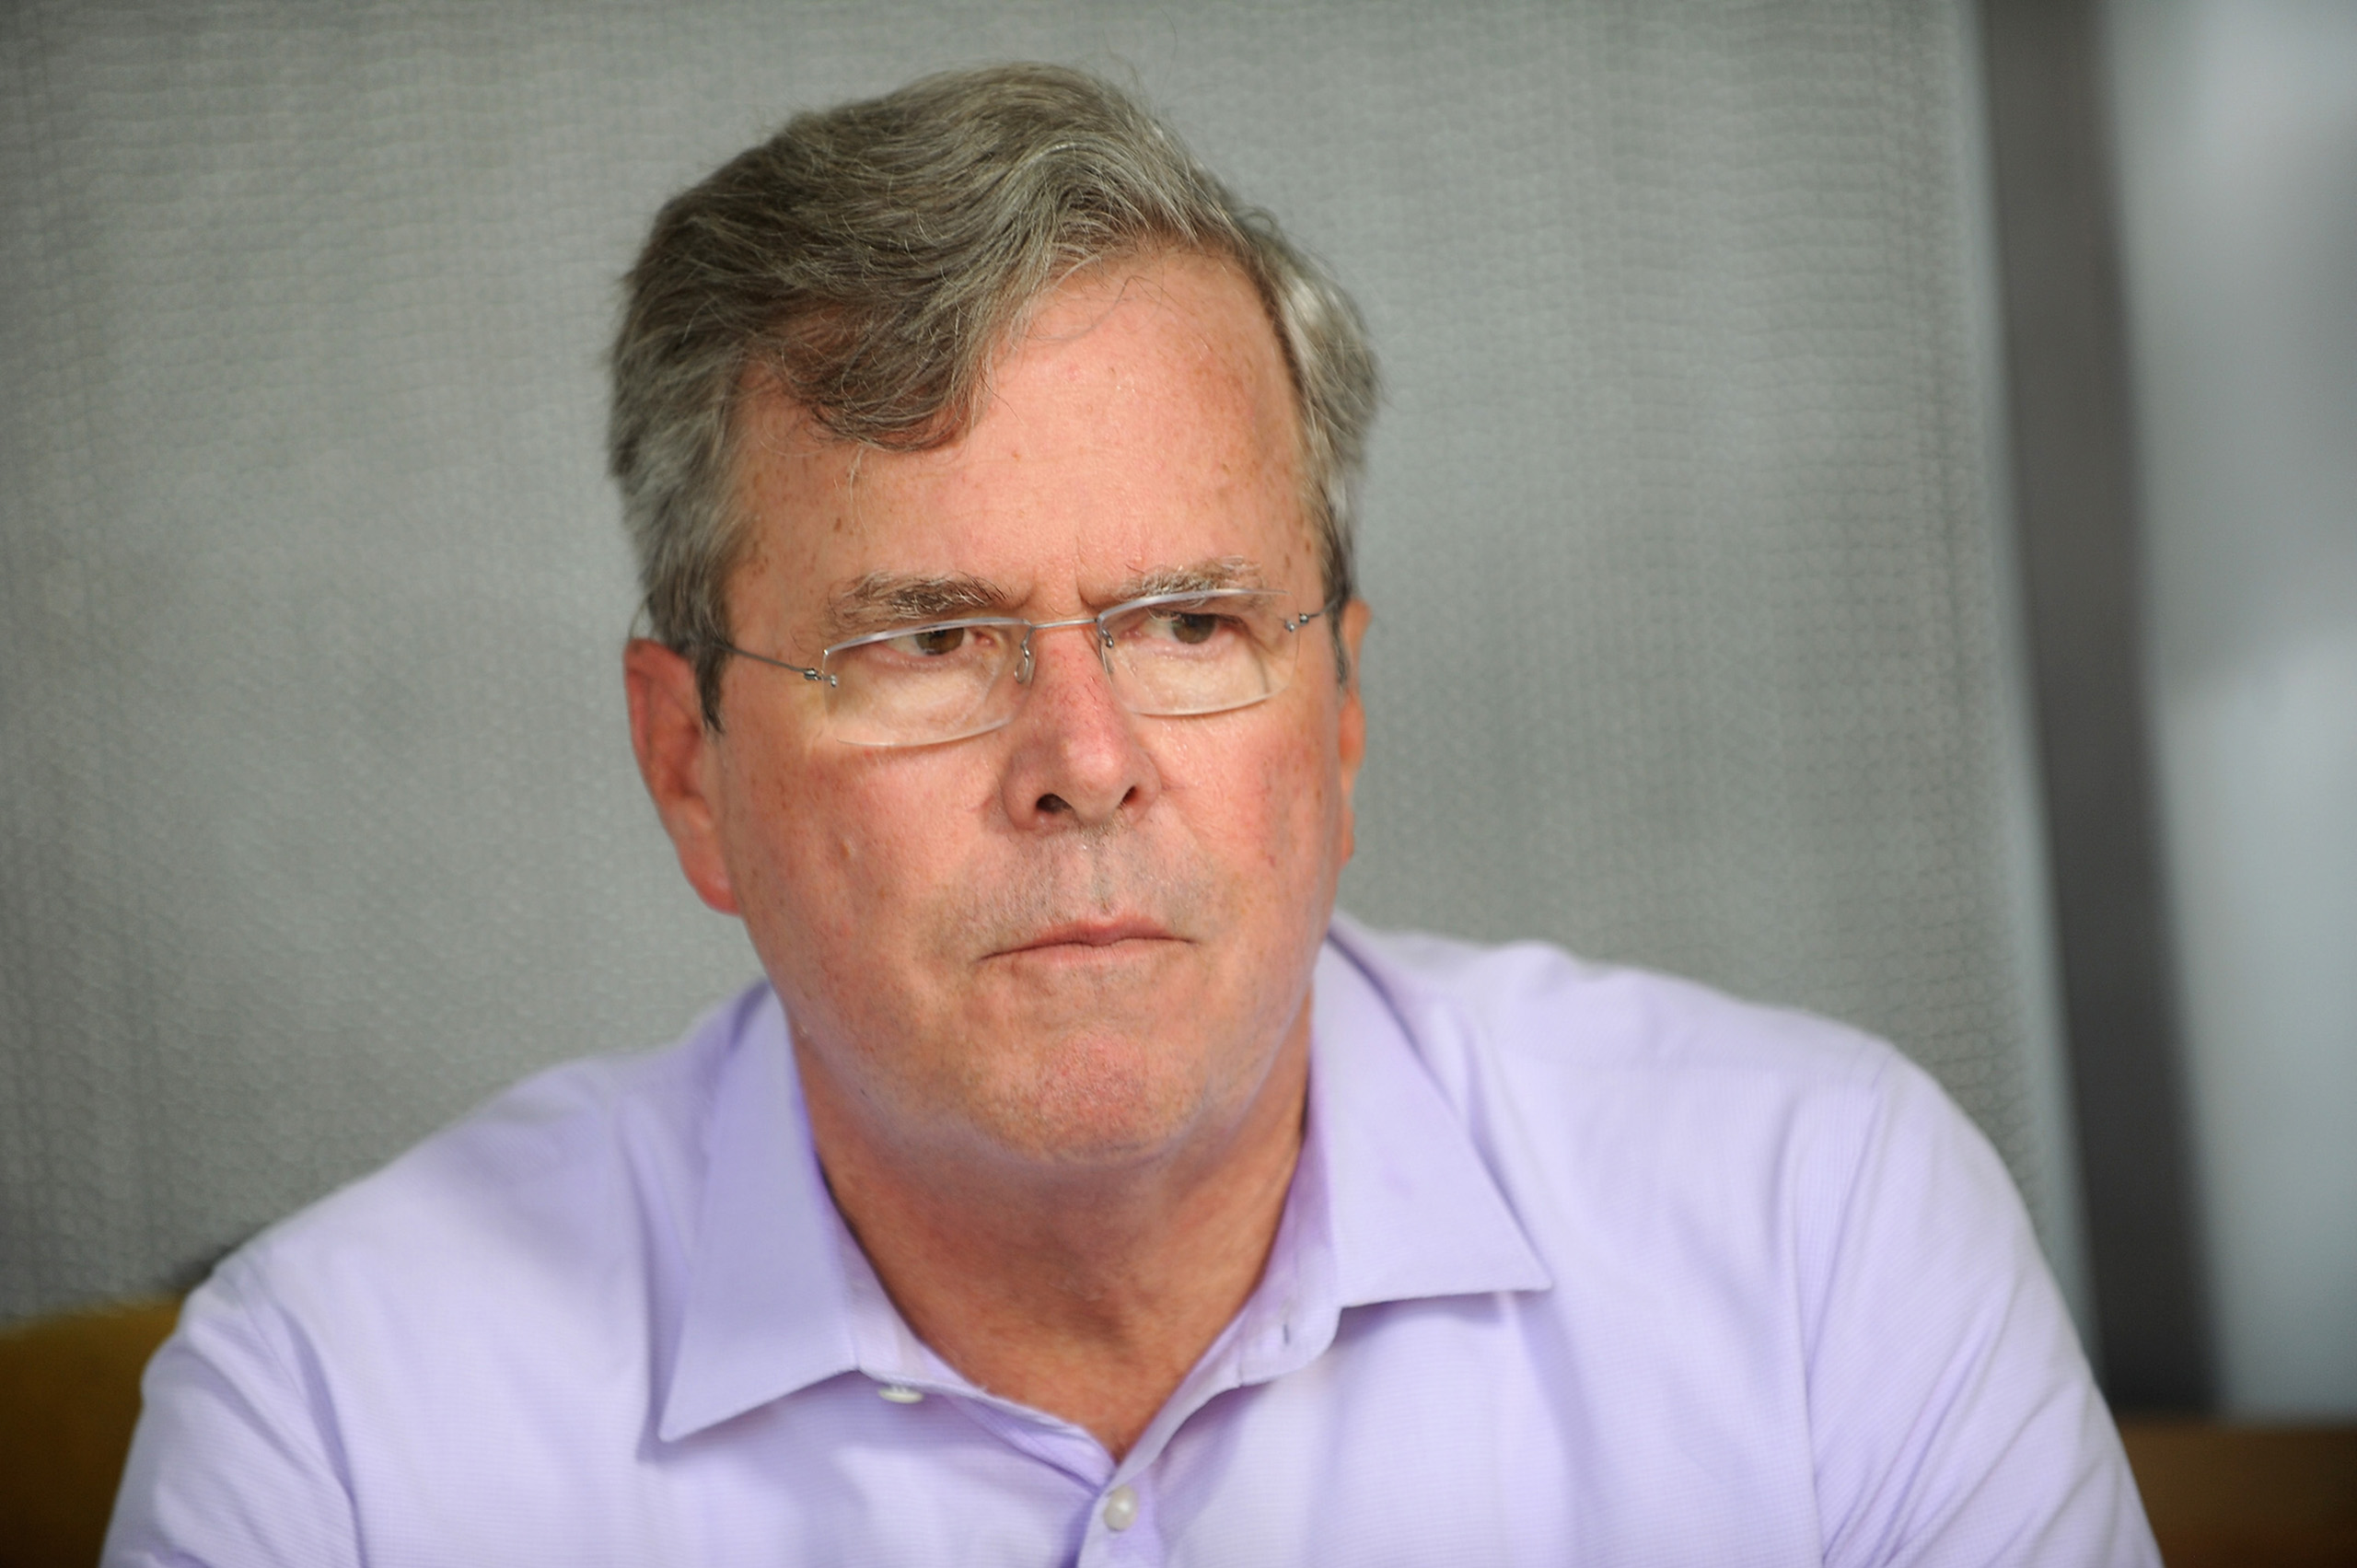 Jeb Bush speaks onstage during OZY FEST 2017 on July 22, 2017 in New York City.